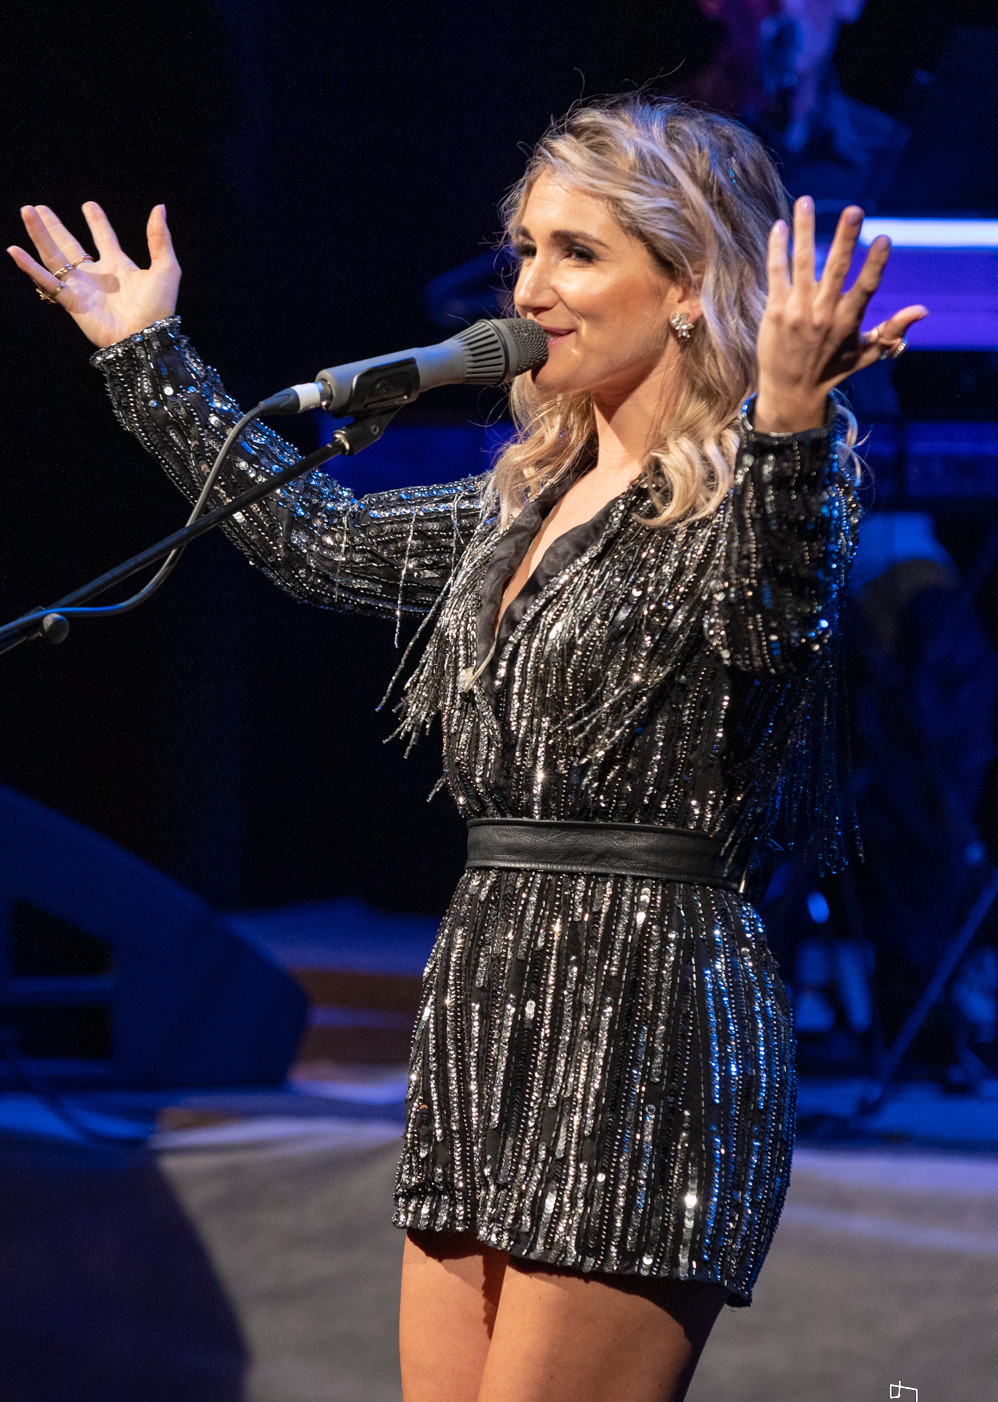 Jody Direen perfoming on stage at the New Zealand Country Music Awards in Gore. Jody Direen performed alongside Tammie Neilson and others as a finalist for Best Country Artist of the Year Tui Award.